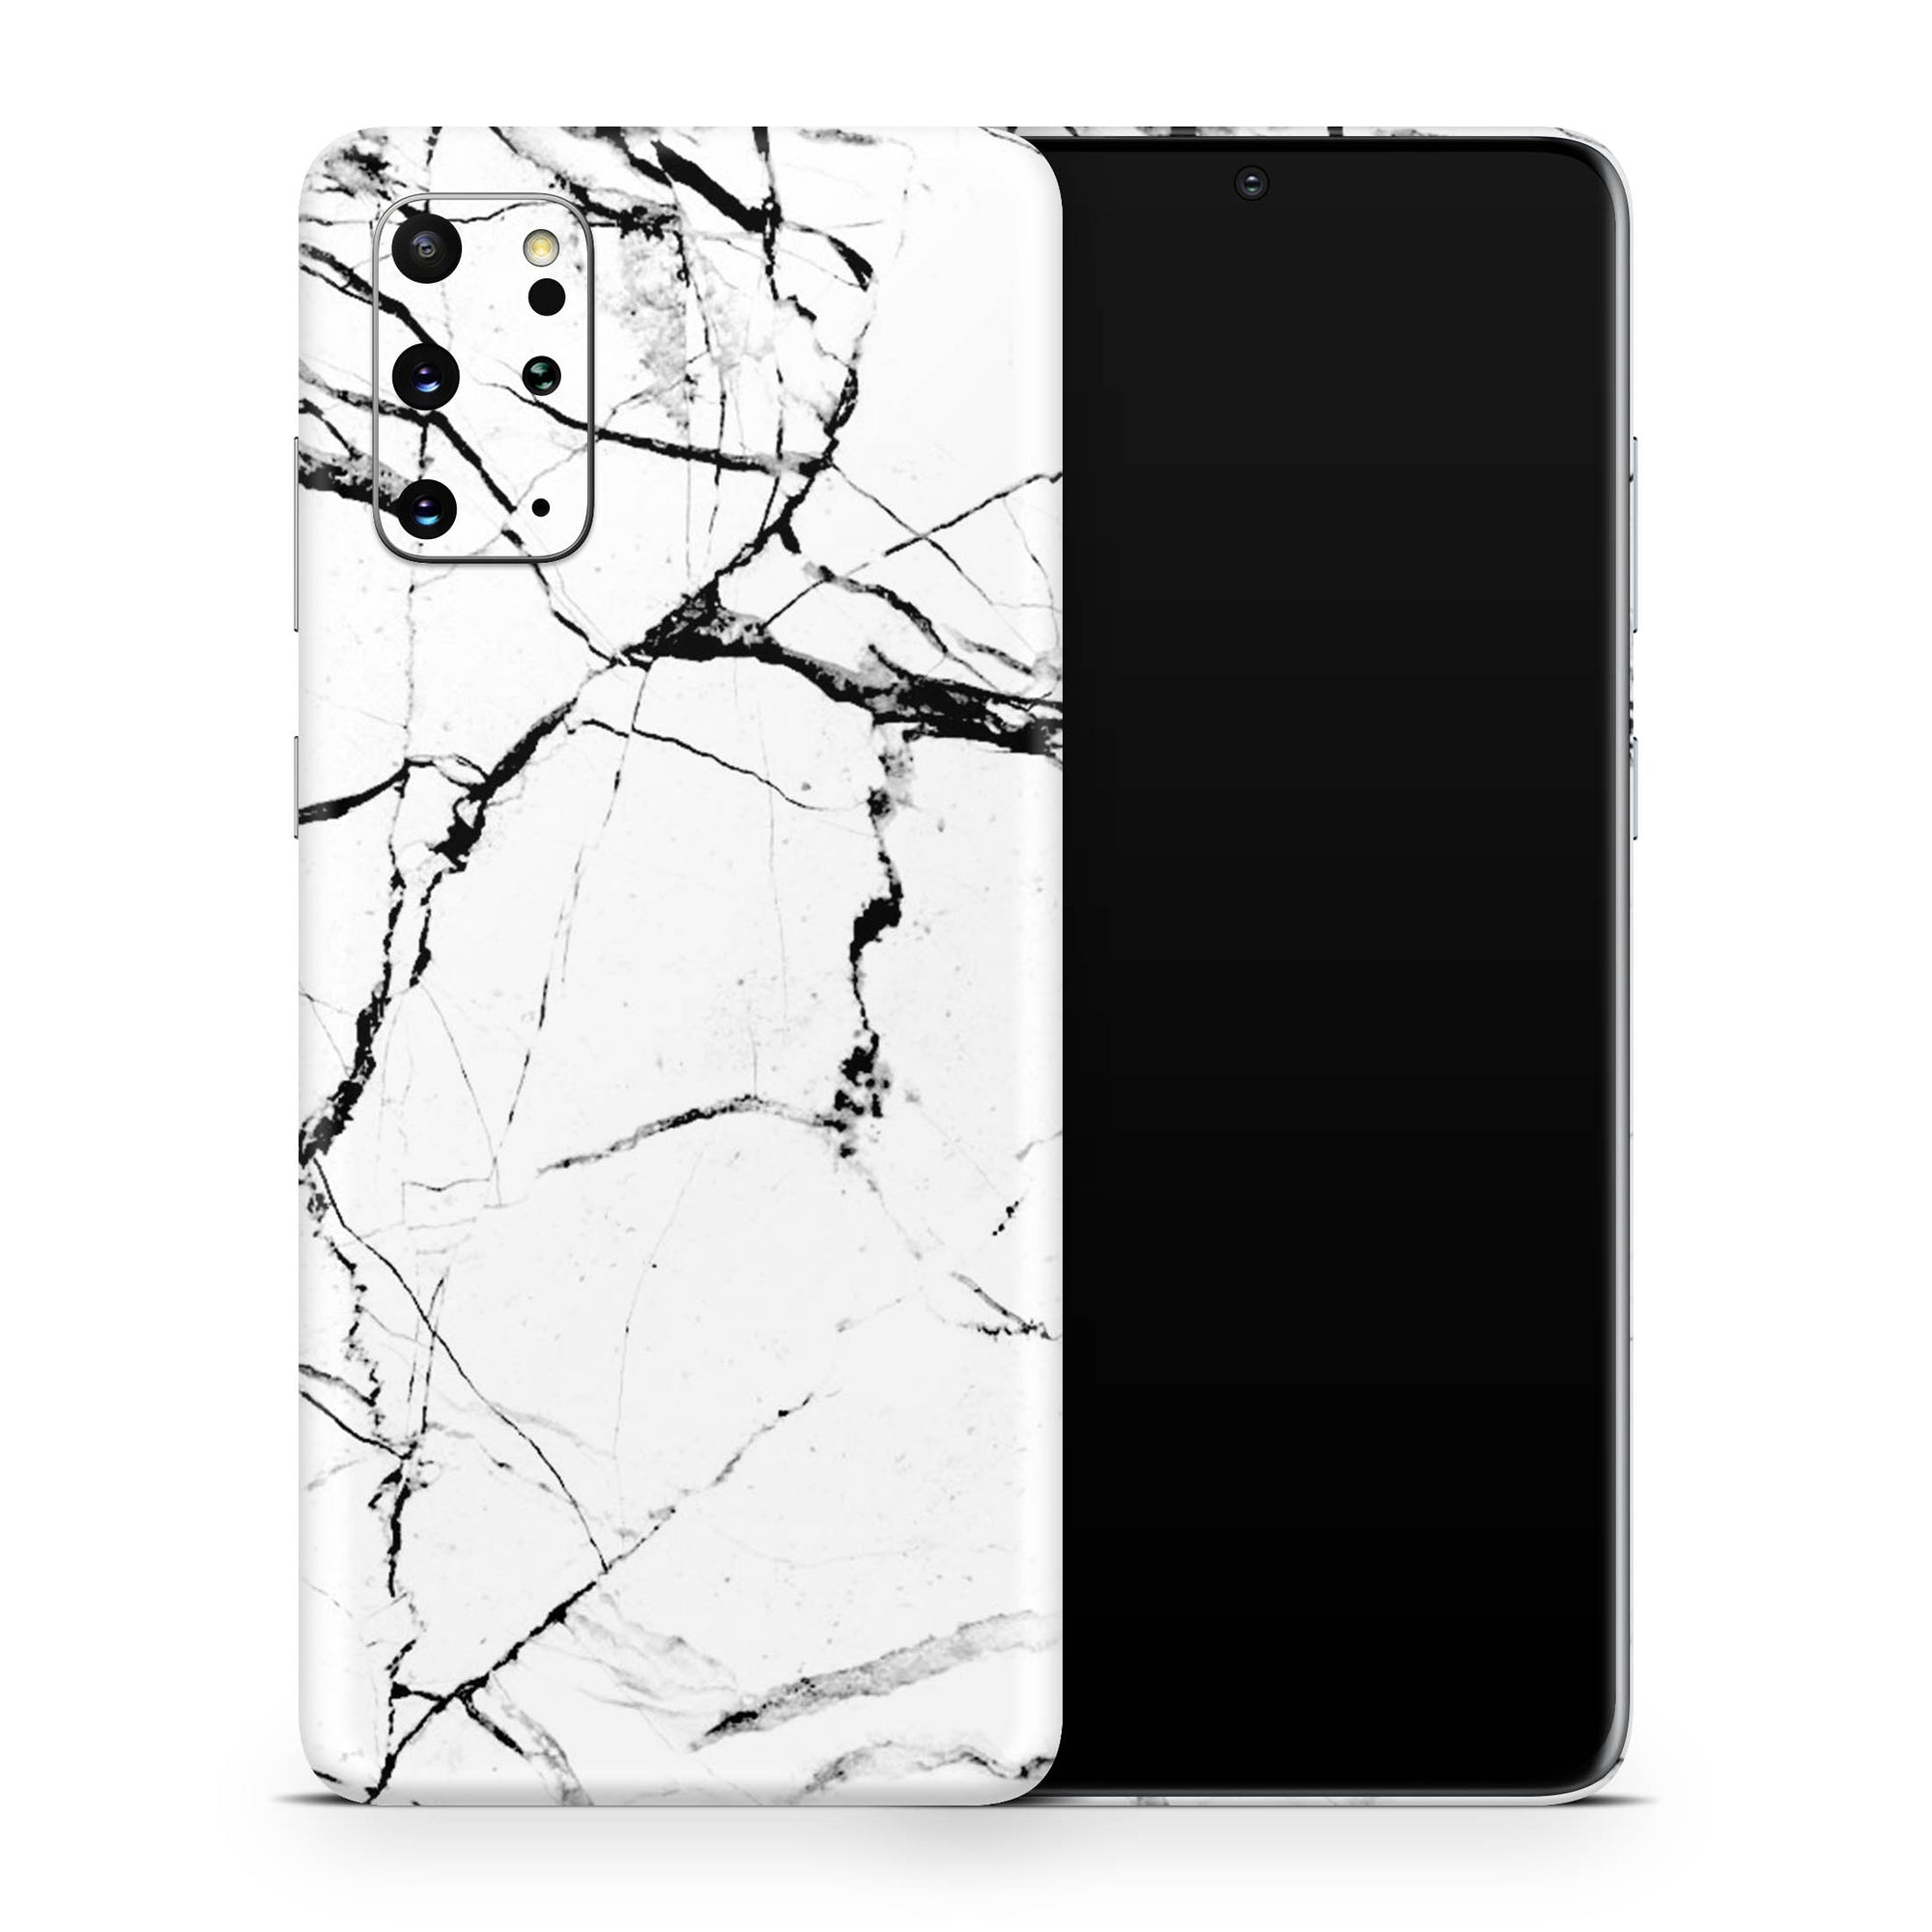 White Hyper Marble Galaxy S20 Ultra Skin + Case-Uniqfind